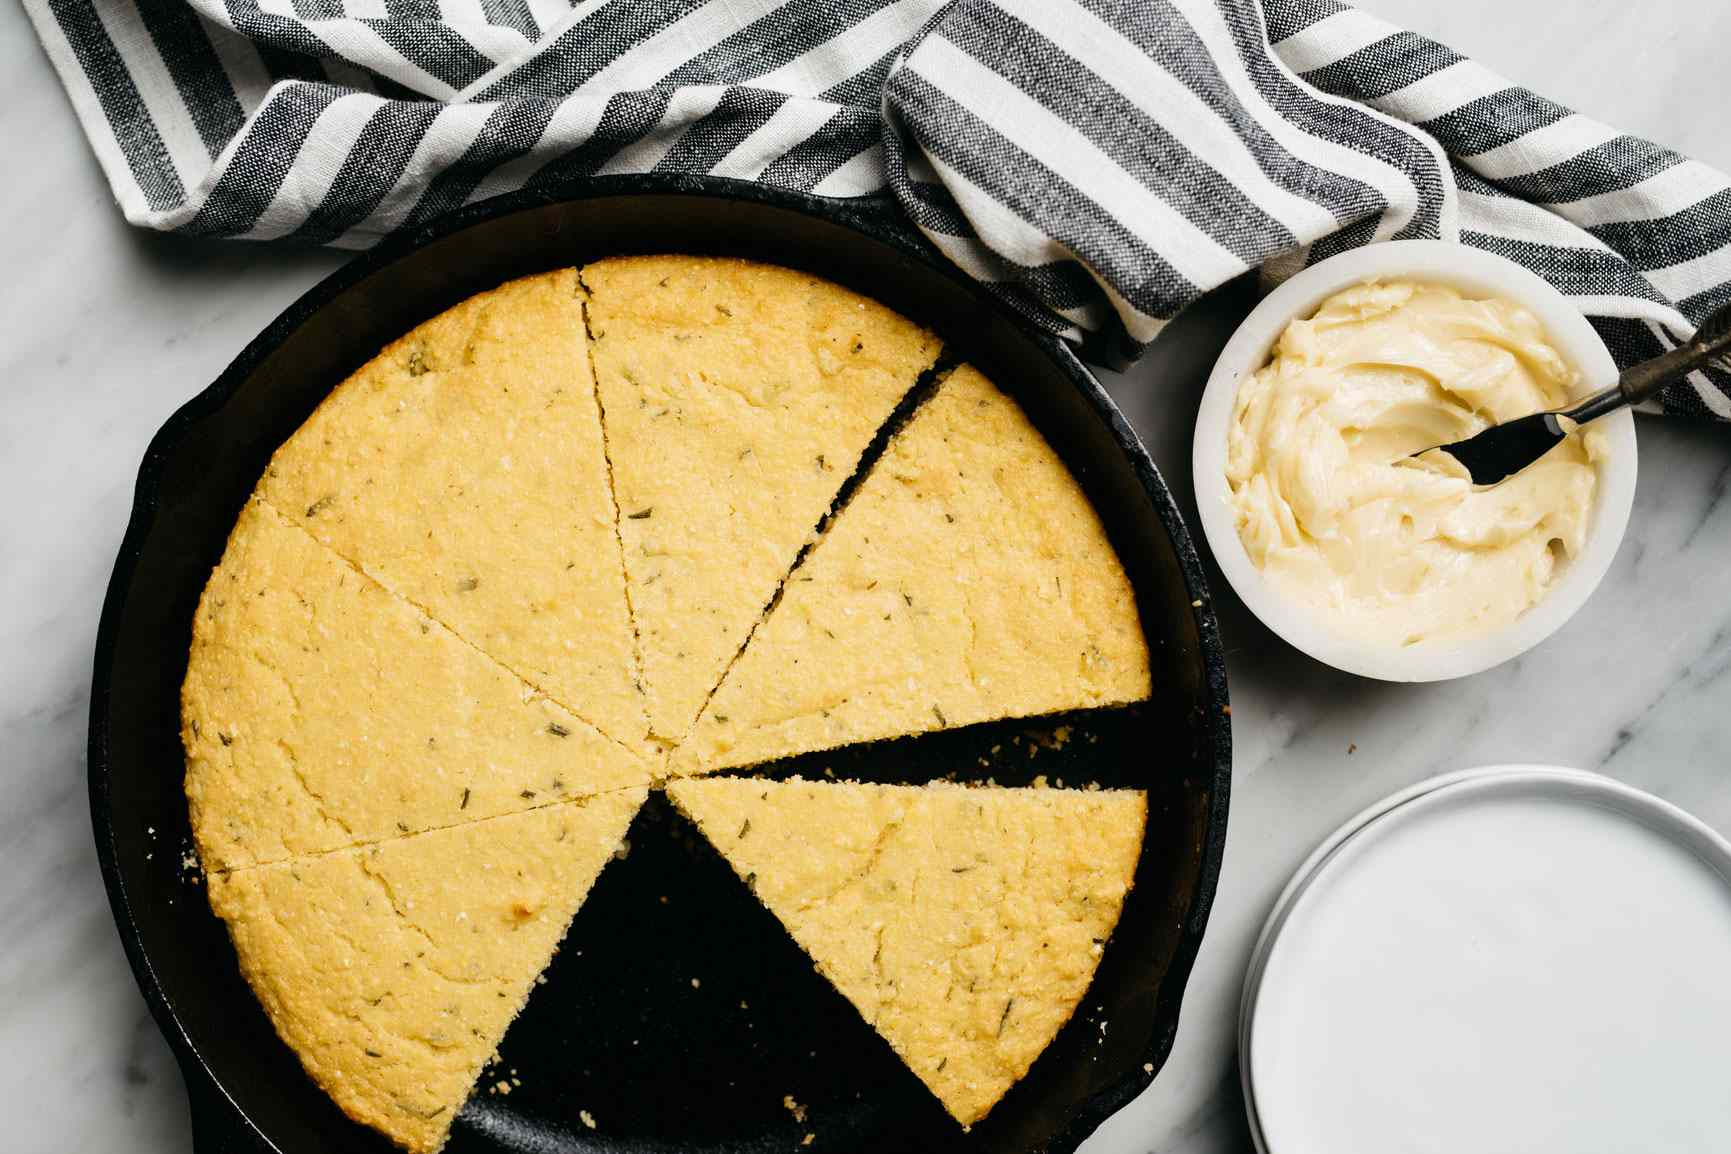 Cornbread and whipped butter